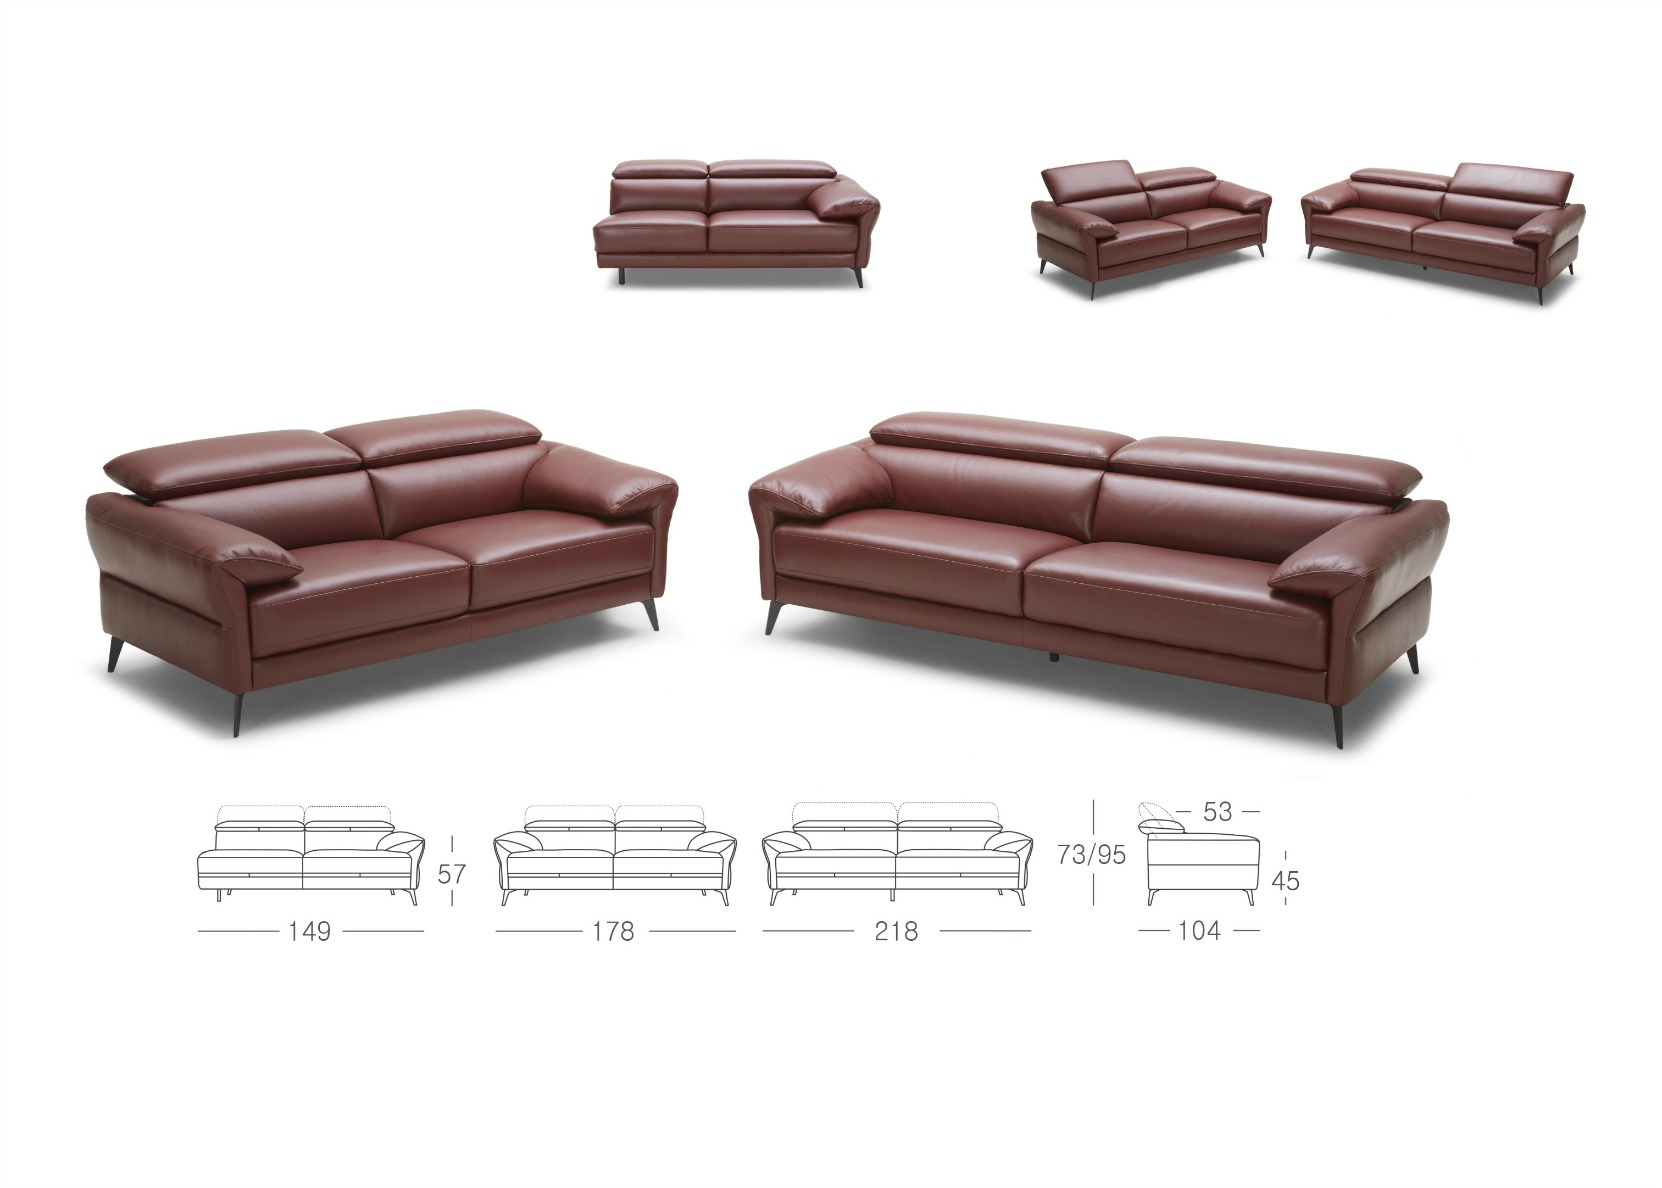 3+2 Set In Luxurious Wine Red Leather - Not Just Brown